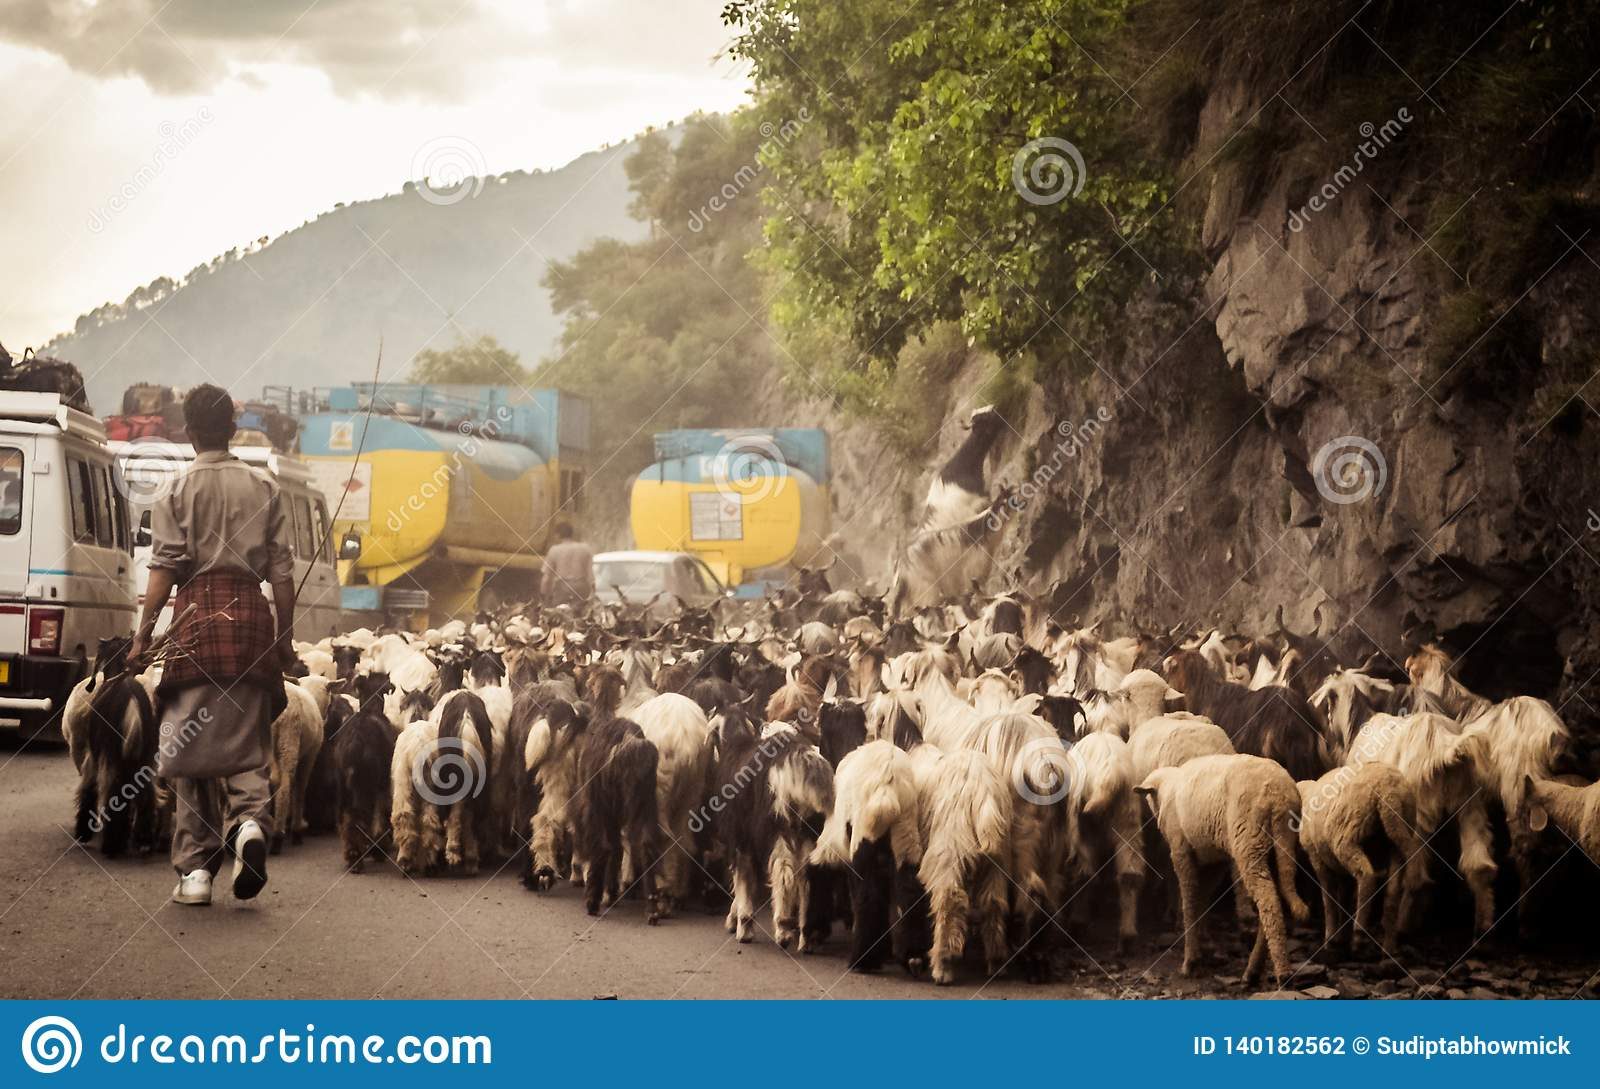 Car Point of view image. A flock of Sheep walking along a country highway in himalayan mountain pass in Leh Ladakh Manali Road of